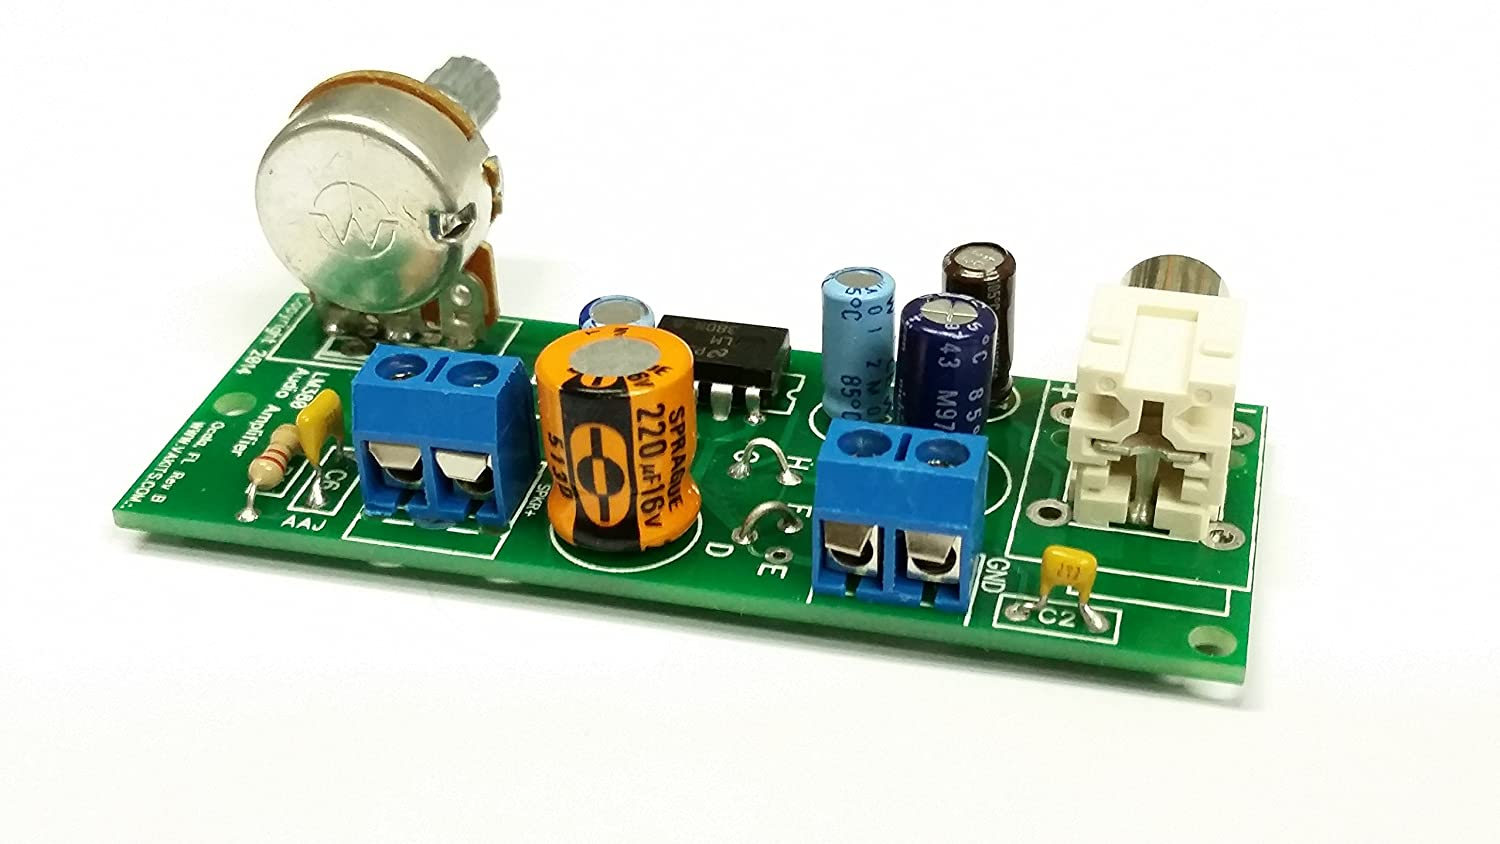 Lm380n 8 Audio Amplifier Kit Rca In 2 Pin Out Car Lm380 Power Circuit Electronics